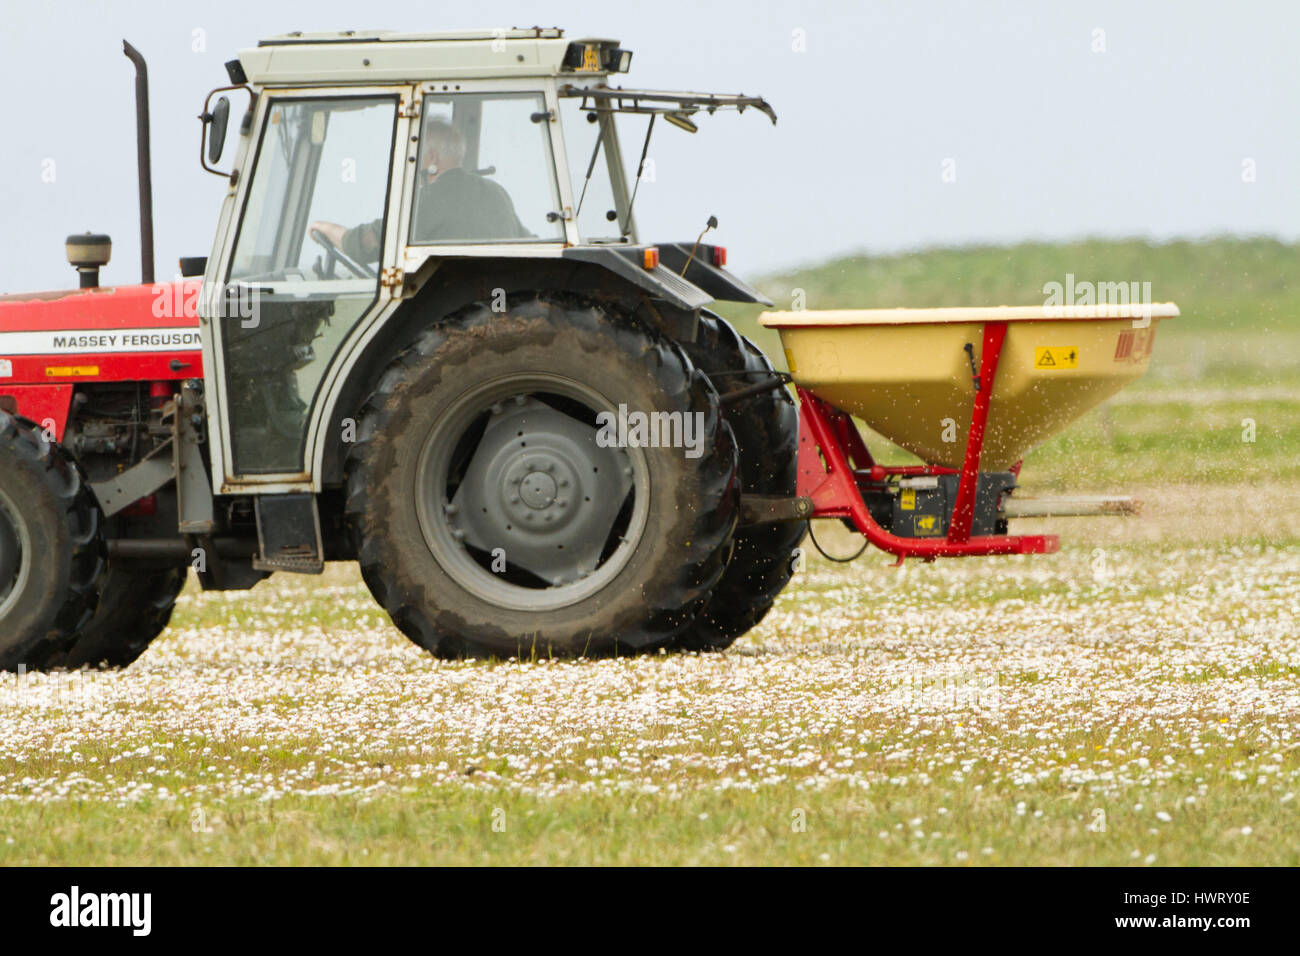 Machir being fertilized  to improve it for agricultural production by crofters, nitrogen fertilizer.Threat to bio - Stock Image